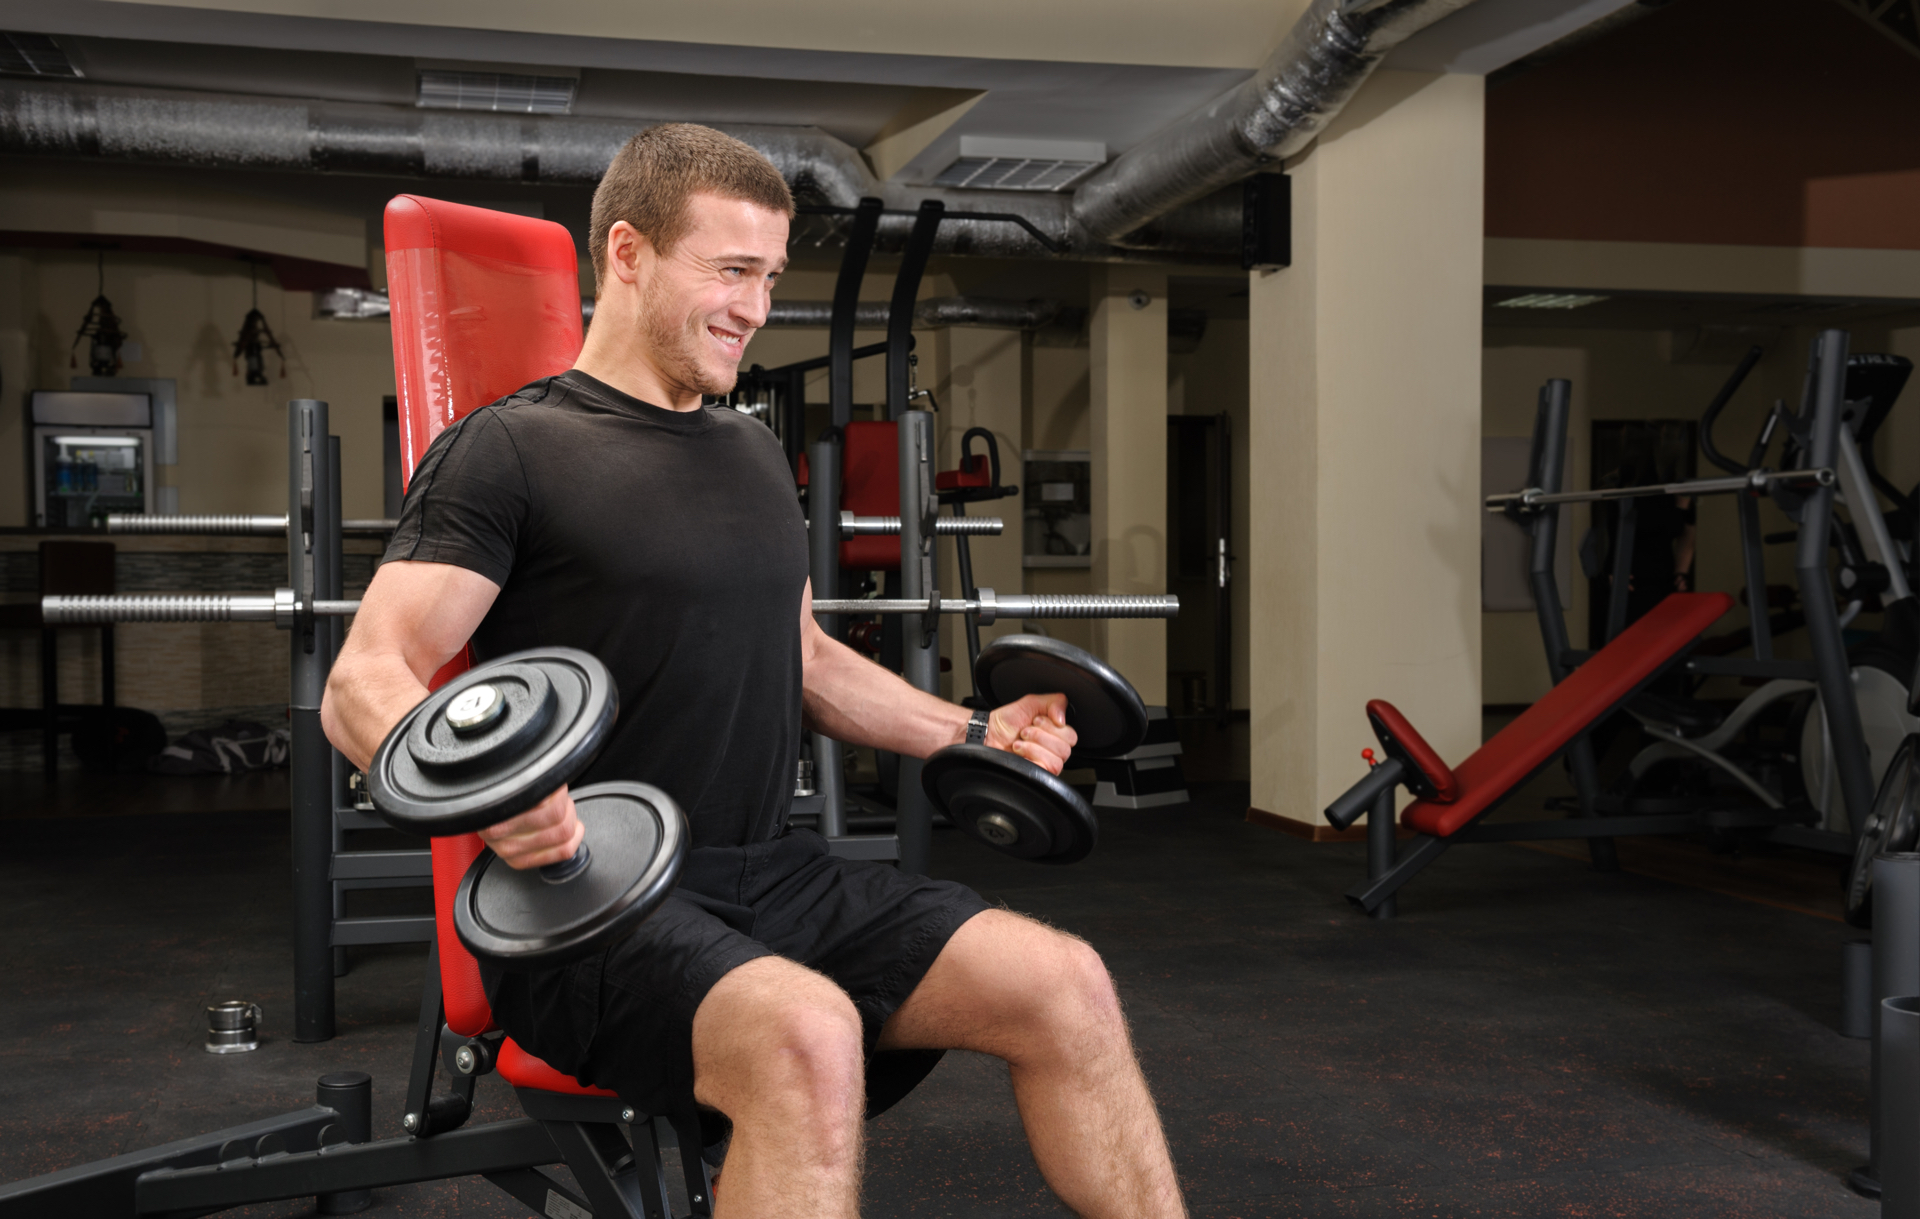 Design by Fitness Sports Training and Rehabilitation Exercises with focused weight training.